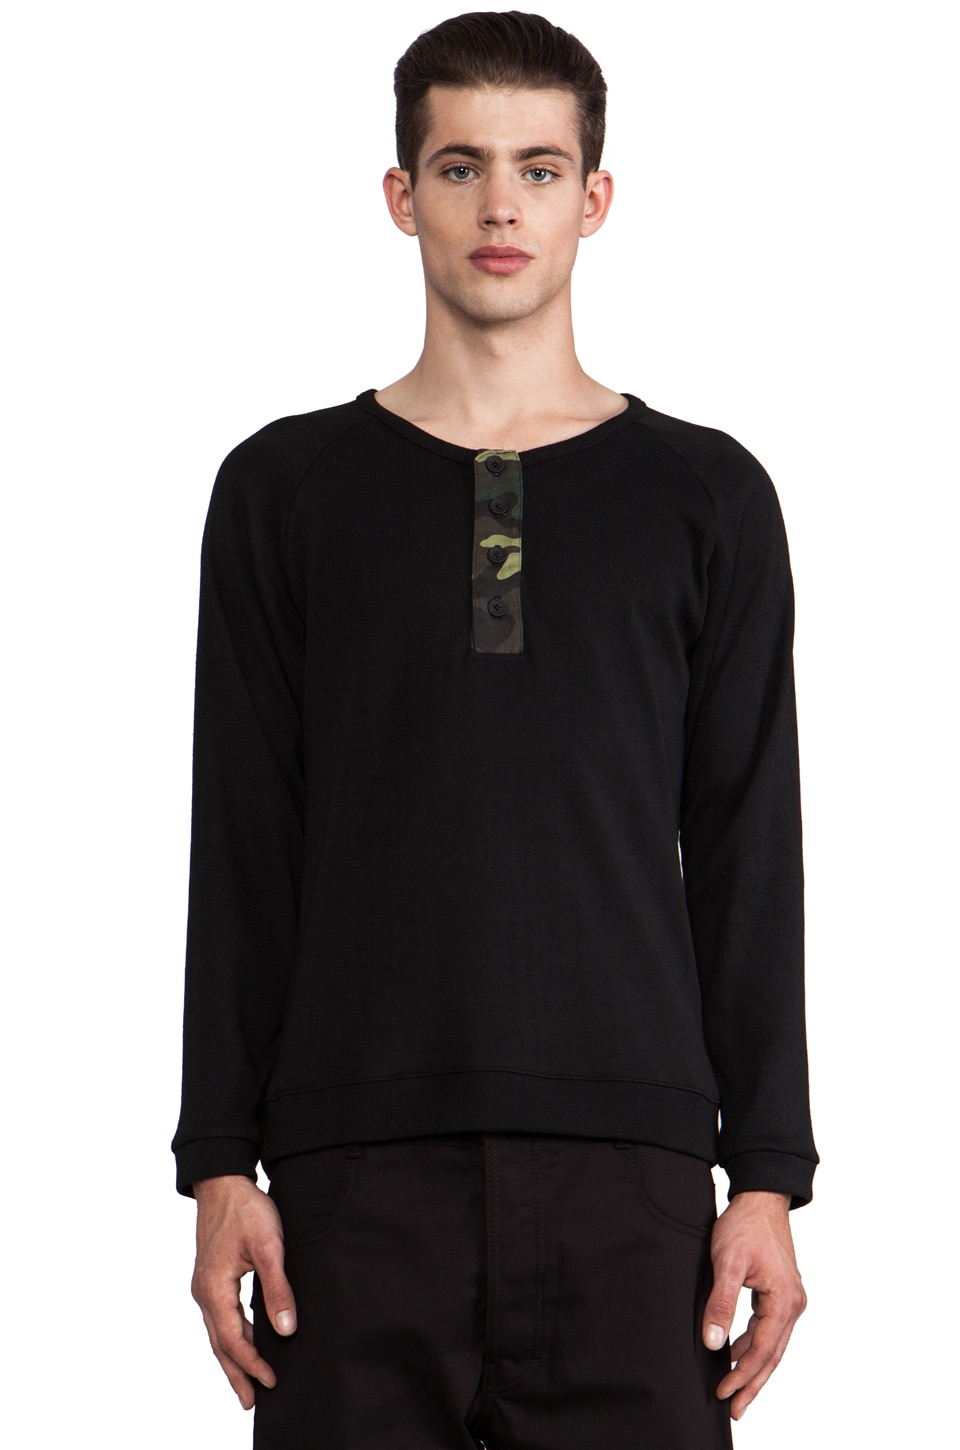 B:Scott Fabric Blocked Henley in Black/Camo